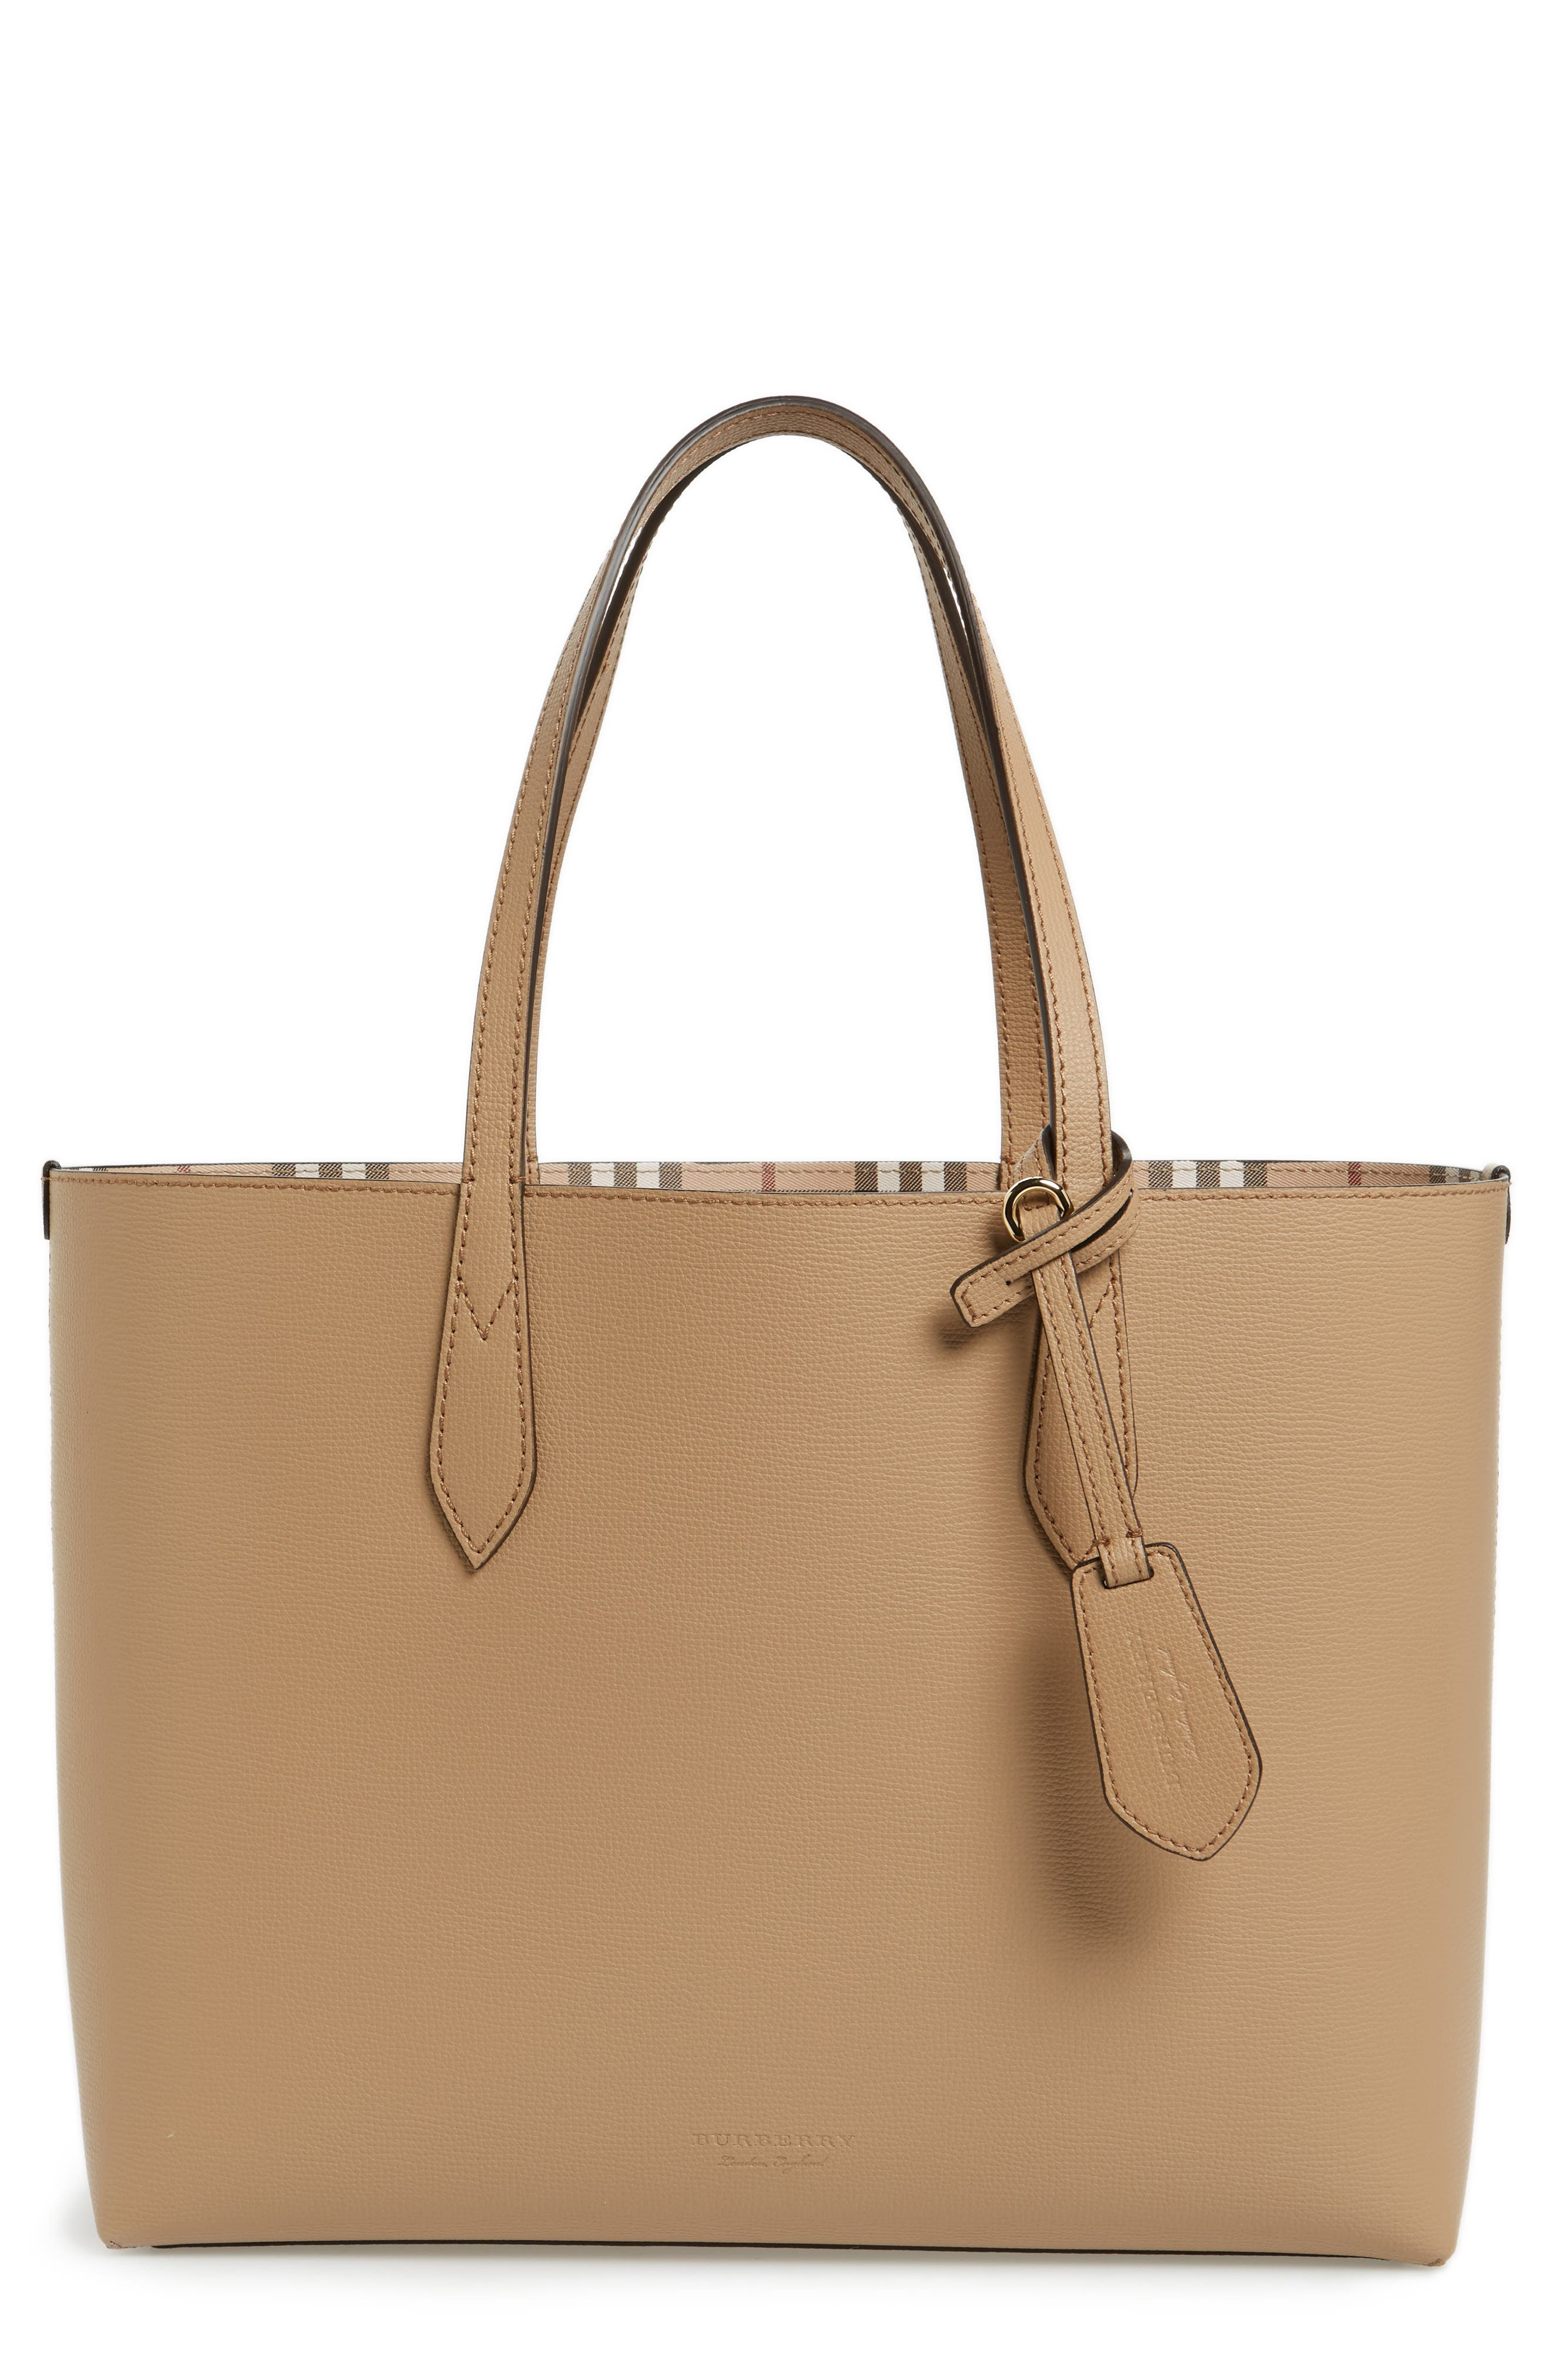 Burberry Medium Lavenby Reversible Calfskin Leather Tote